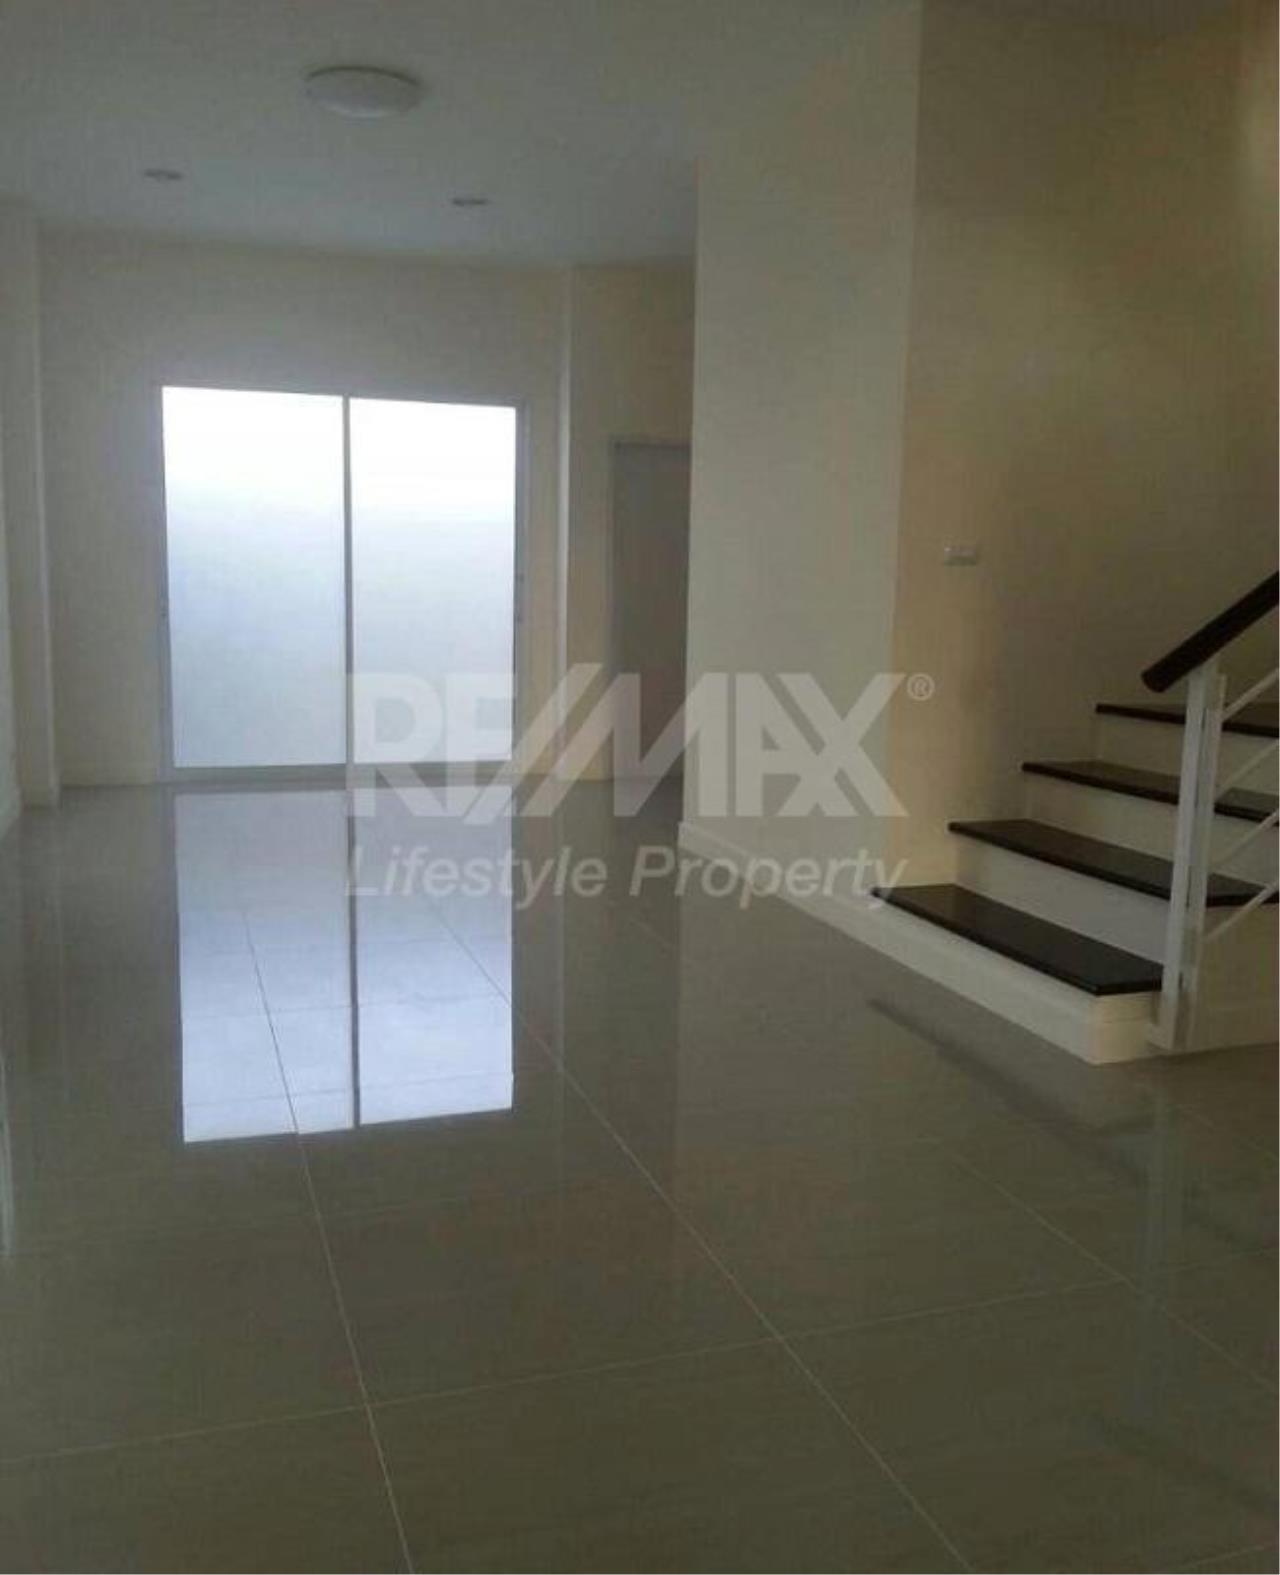 RE/MAX LifeStyle Property Agency's Town House Premium Place Nawamin – Ladprao 10 10